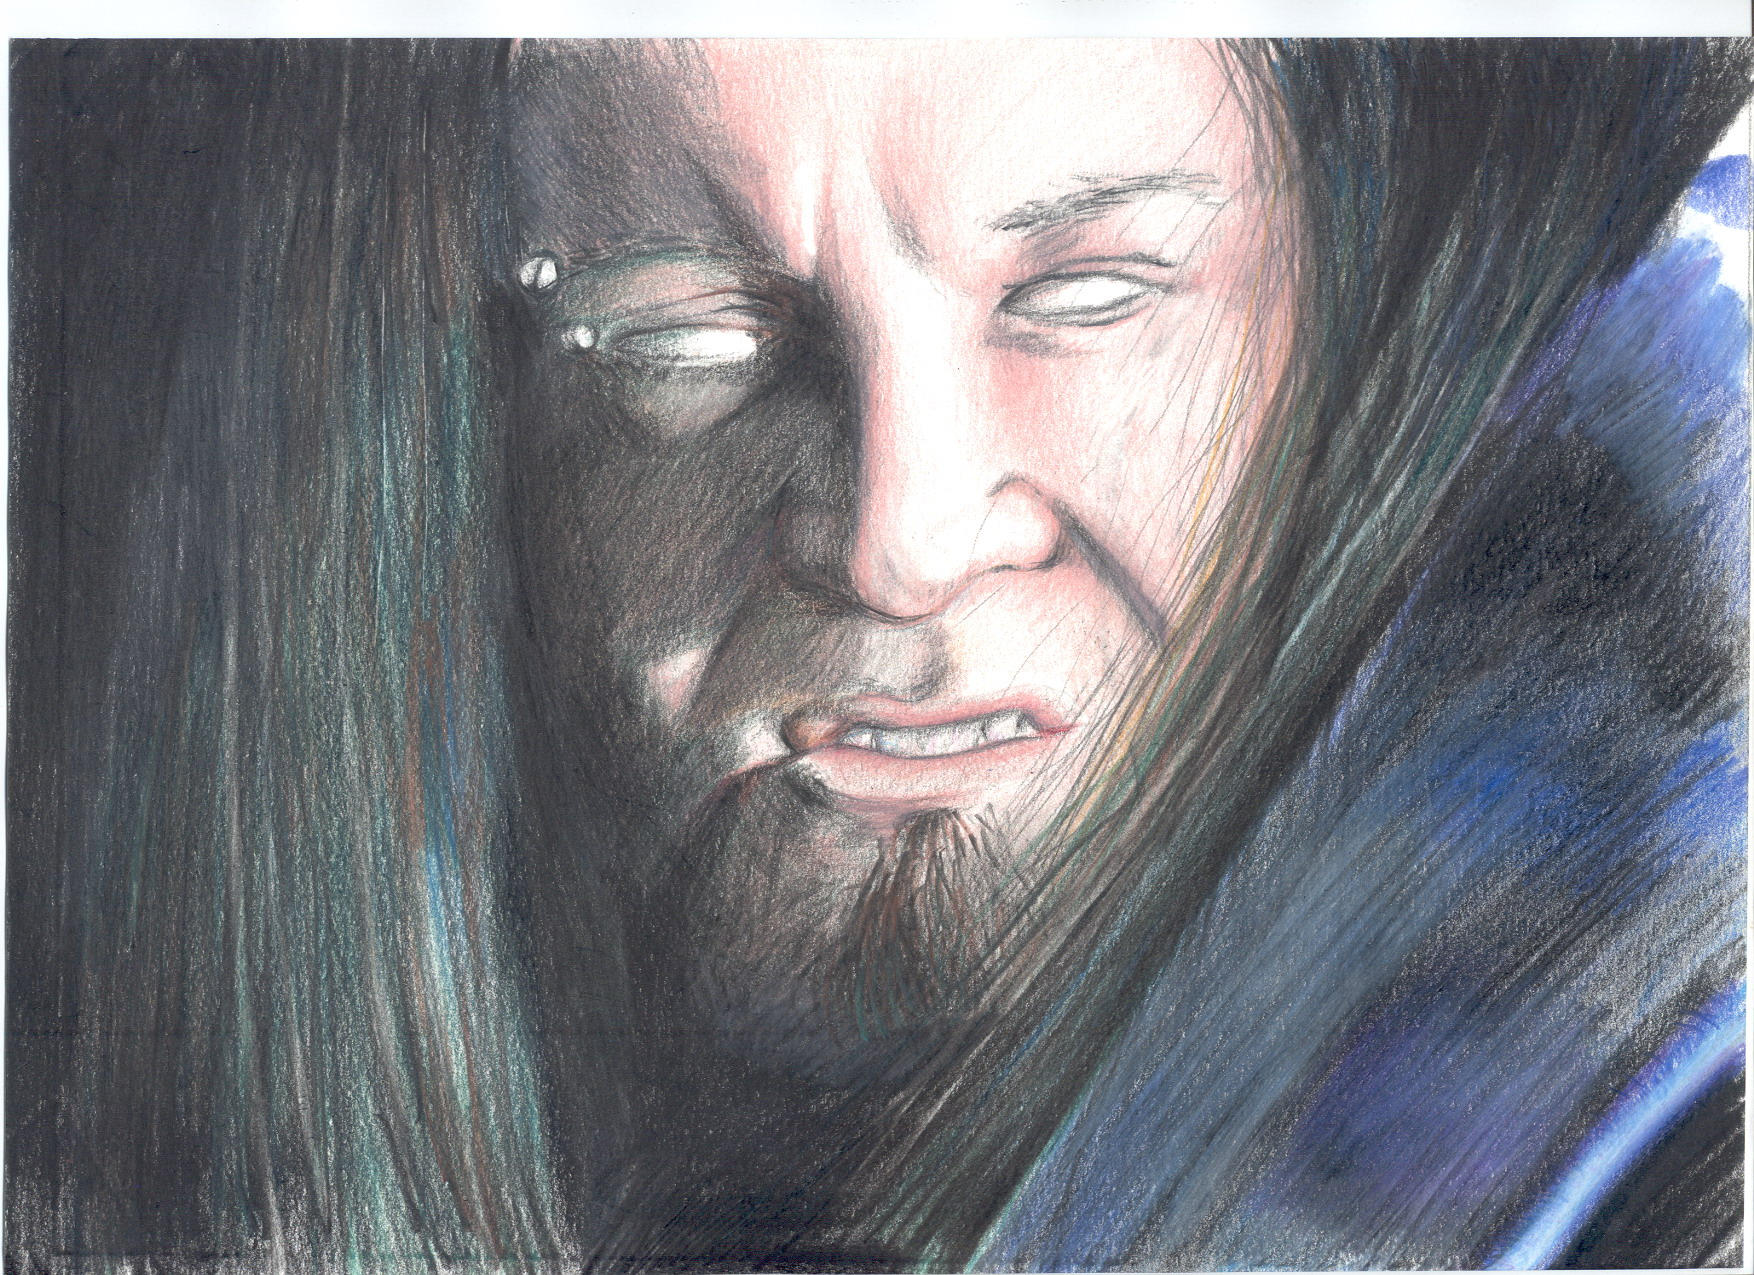 Wwe The Undertaker 1990s The undertaker by zadisma